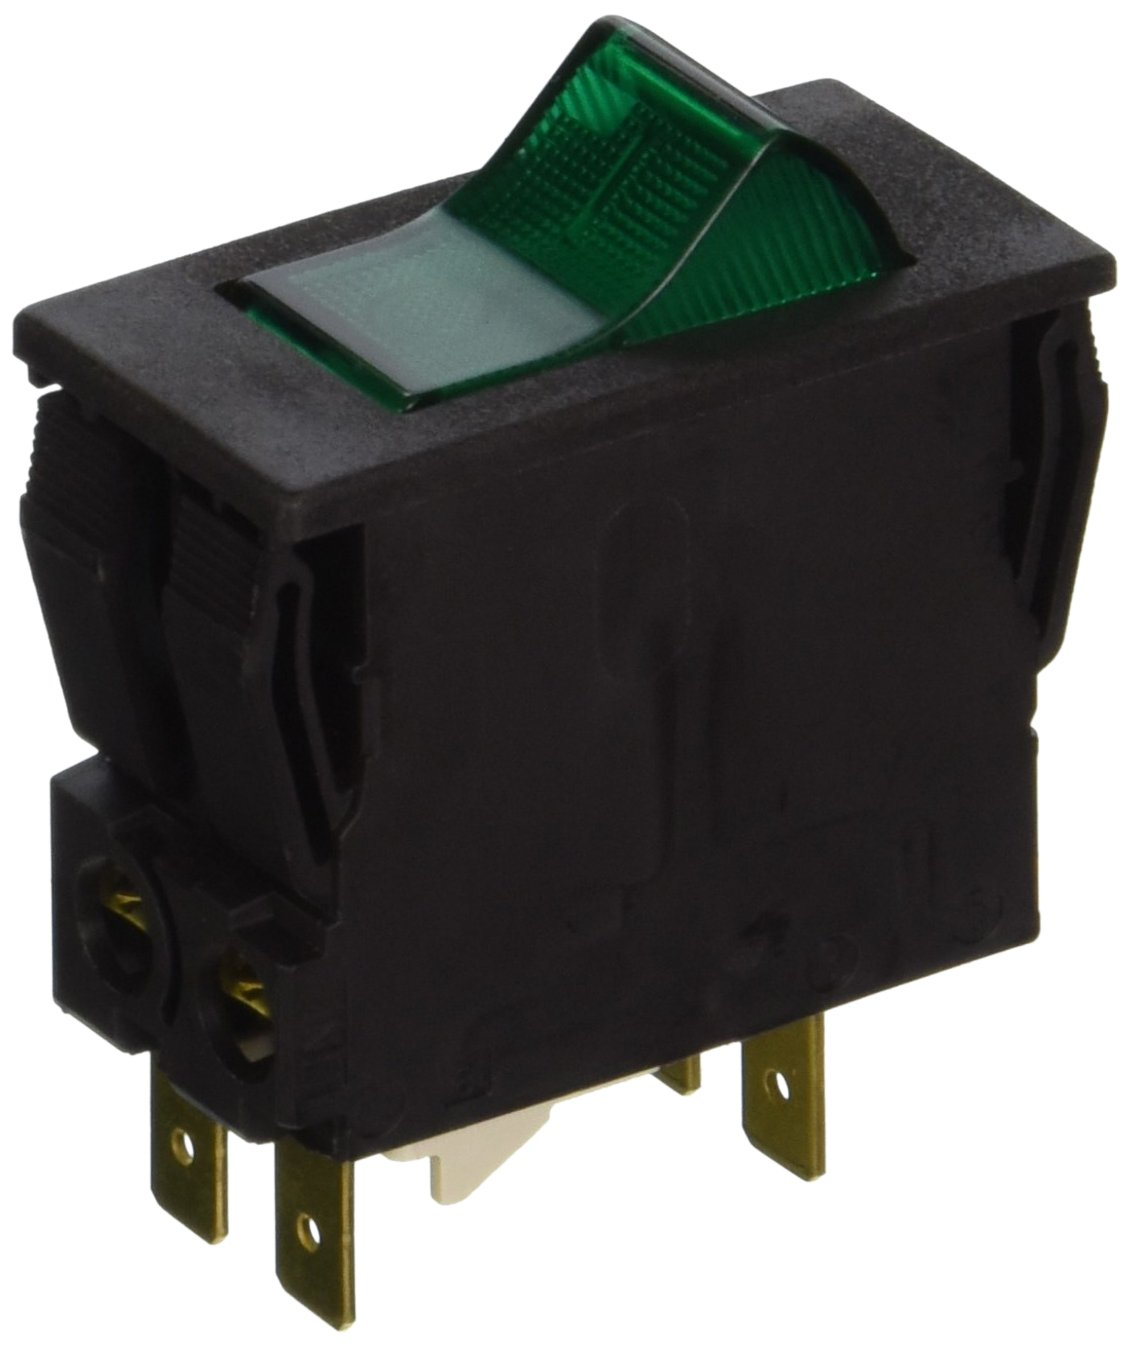 APW 1300220 On/Off Switch, Replaces Bakers Pride BKPM1352X